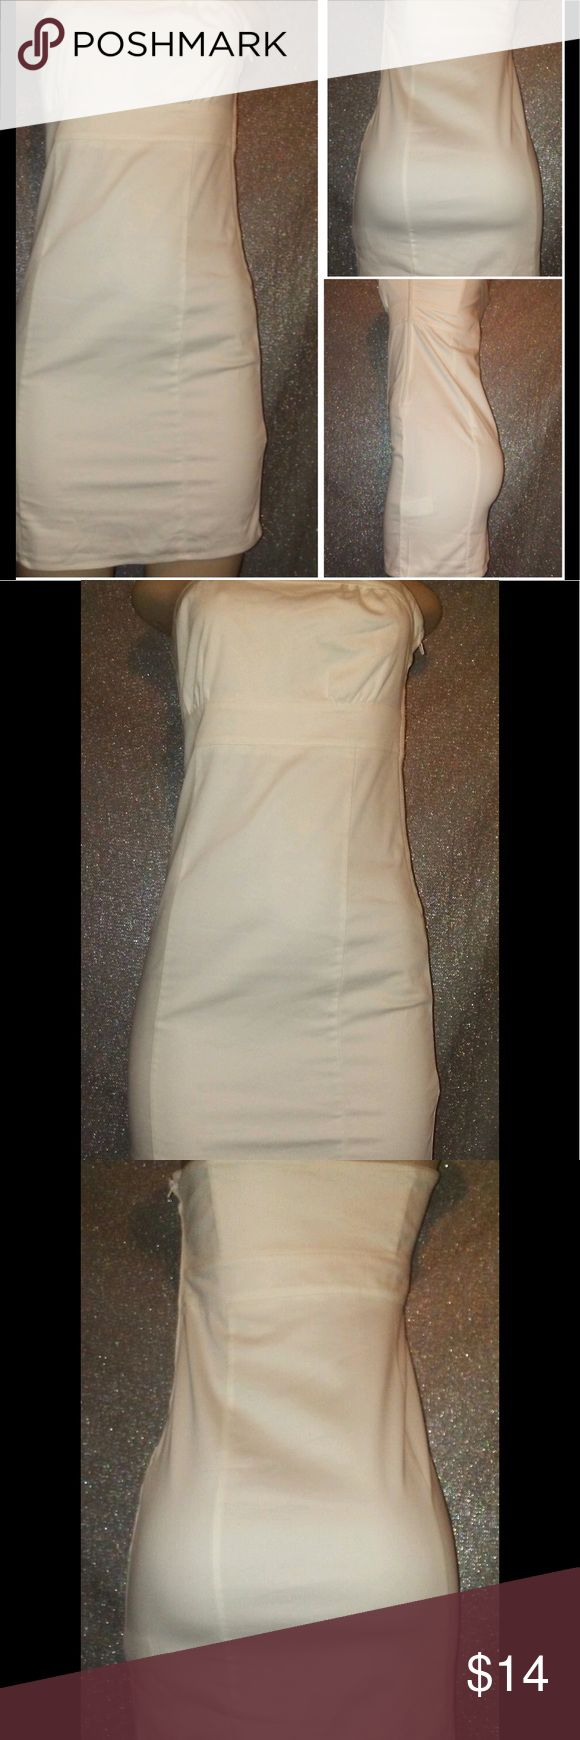 H & M plain White Tube top dress Like New H&M white mini dress H&M Dresses Mini